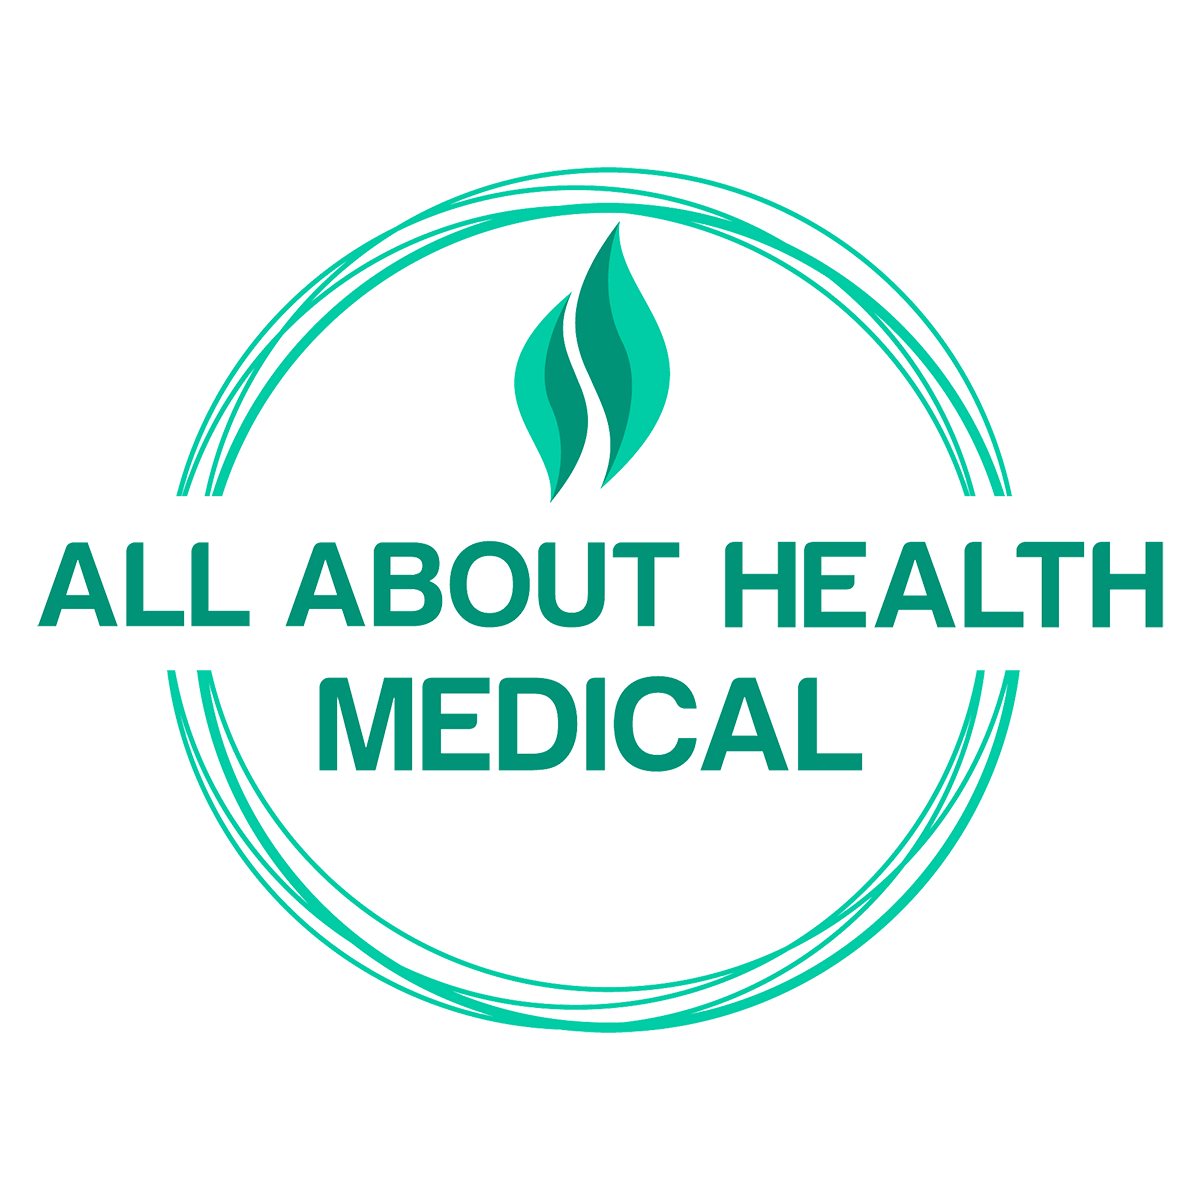 All About Health Medical, PLLC